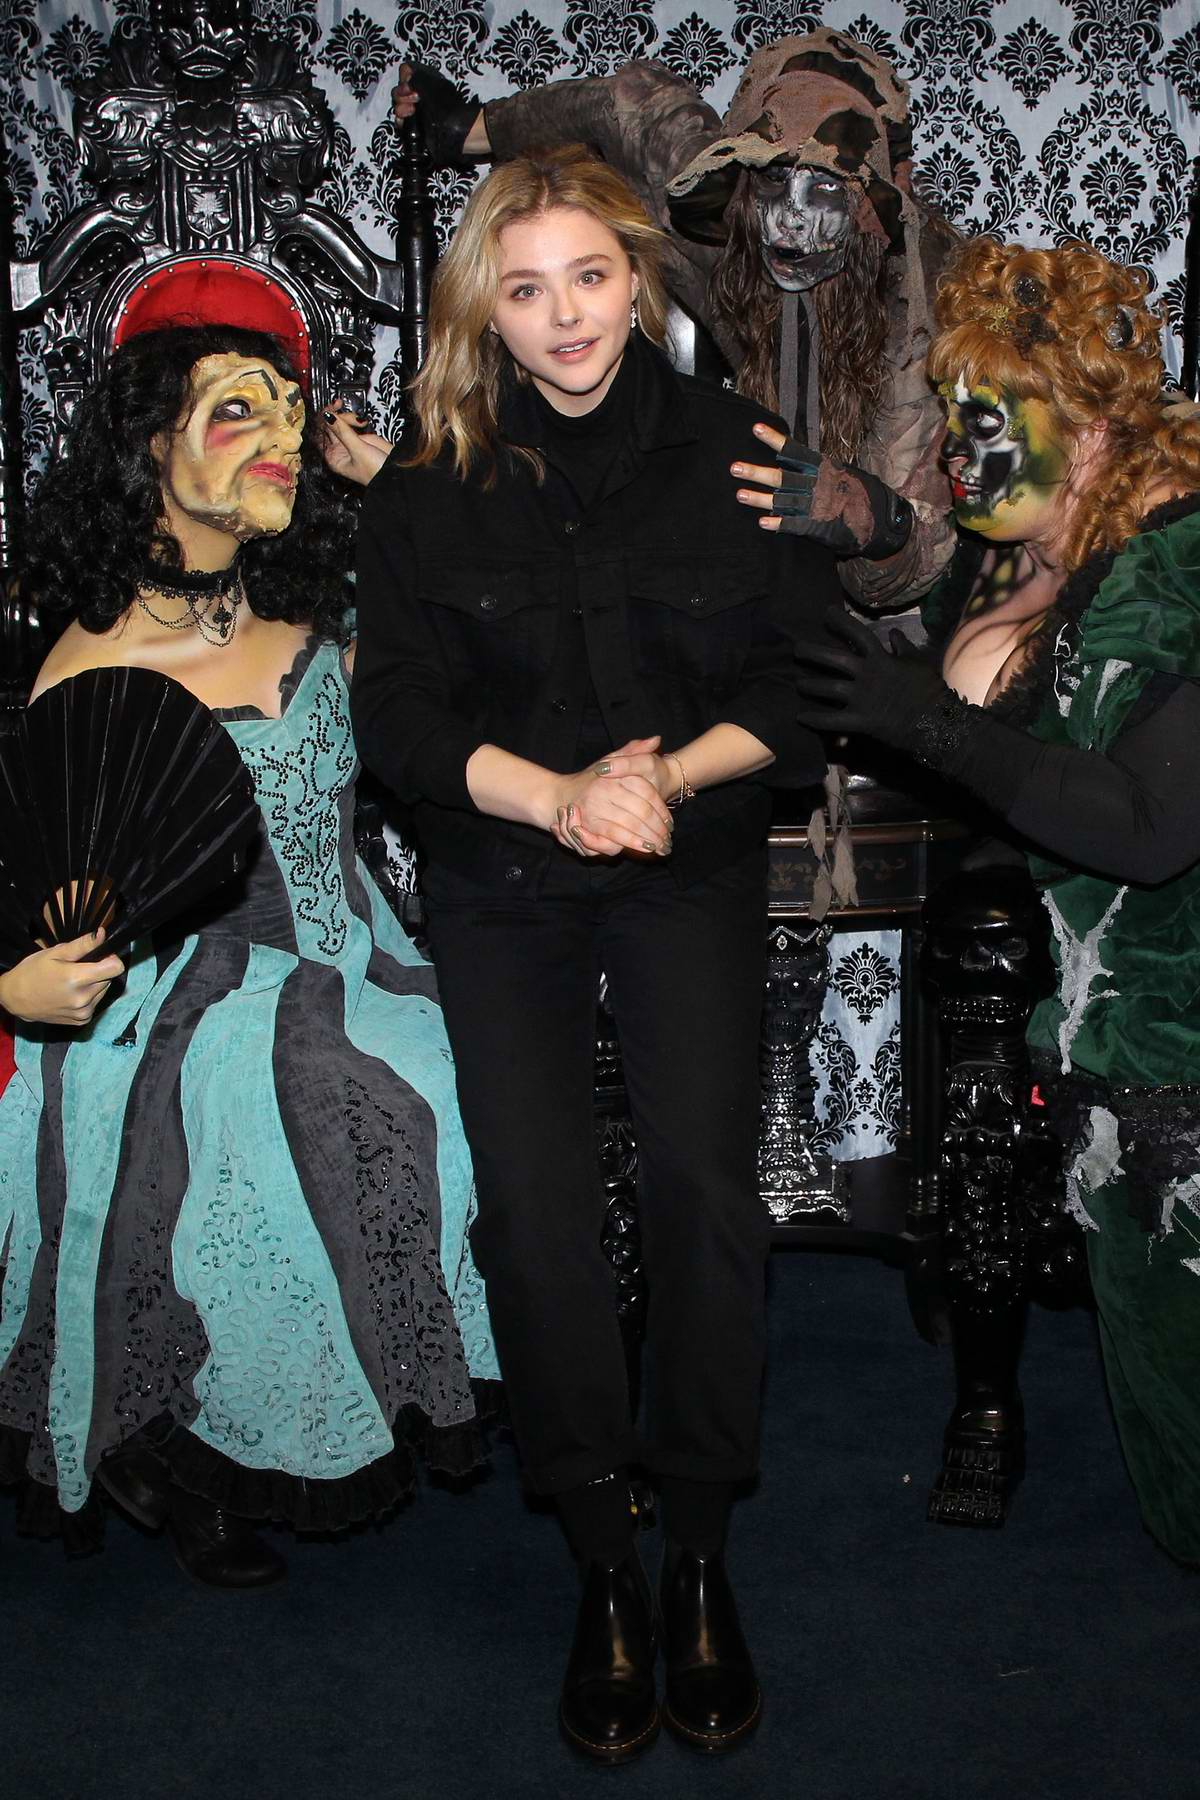 Chloe Grace Moretz visits Knott's Scary Farm in Buena Park, California